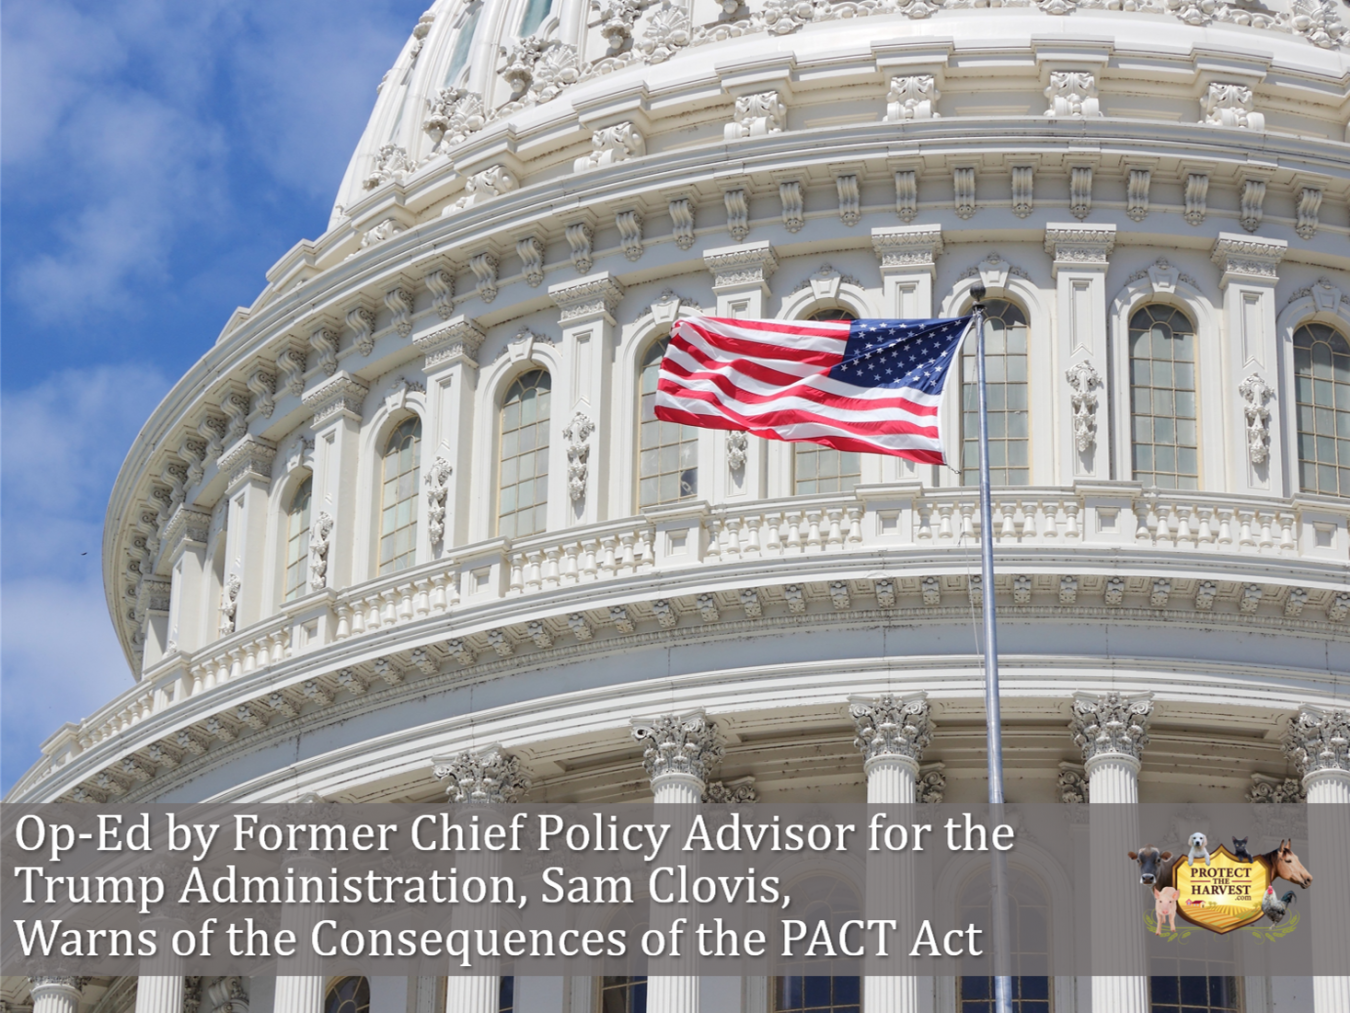 Op-Ed by Former Chief Policy Advisor for the Trump Administration Warns of the Consequences of the PACT Act